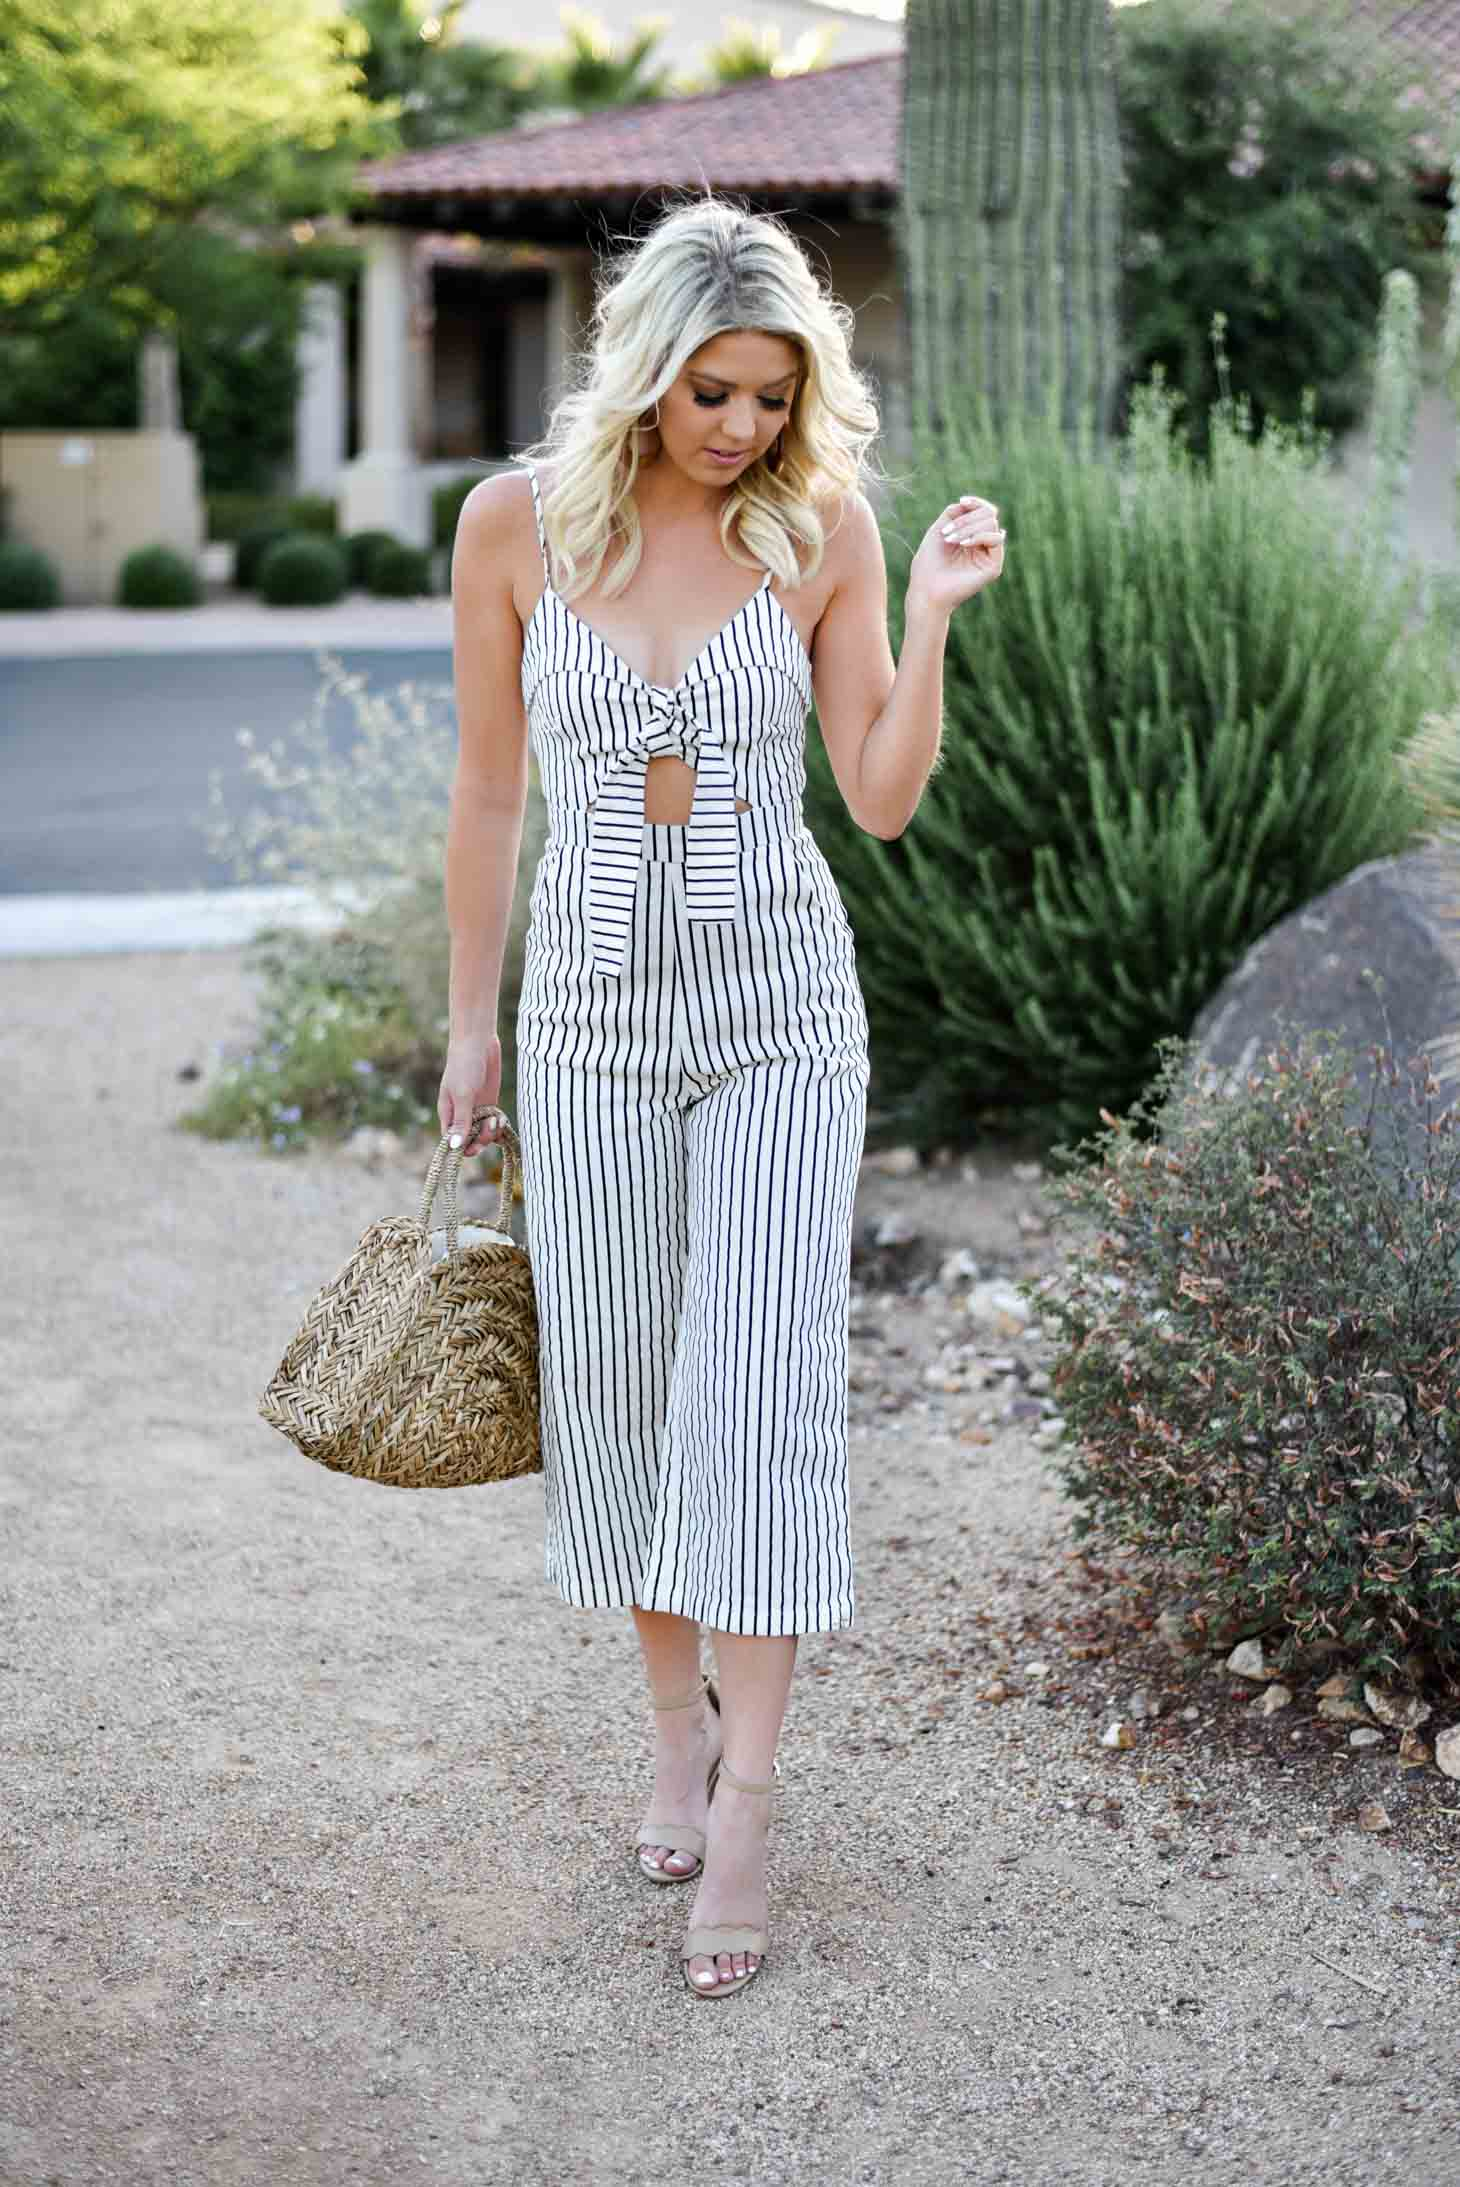 Erin Elizabeth of Wink and a Twirl shares this Mason Jar Boutique Striped Jumpsuit with cutout and tie detail for summer style